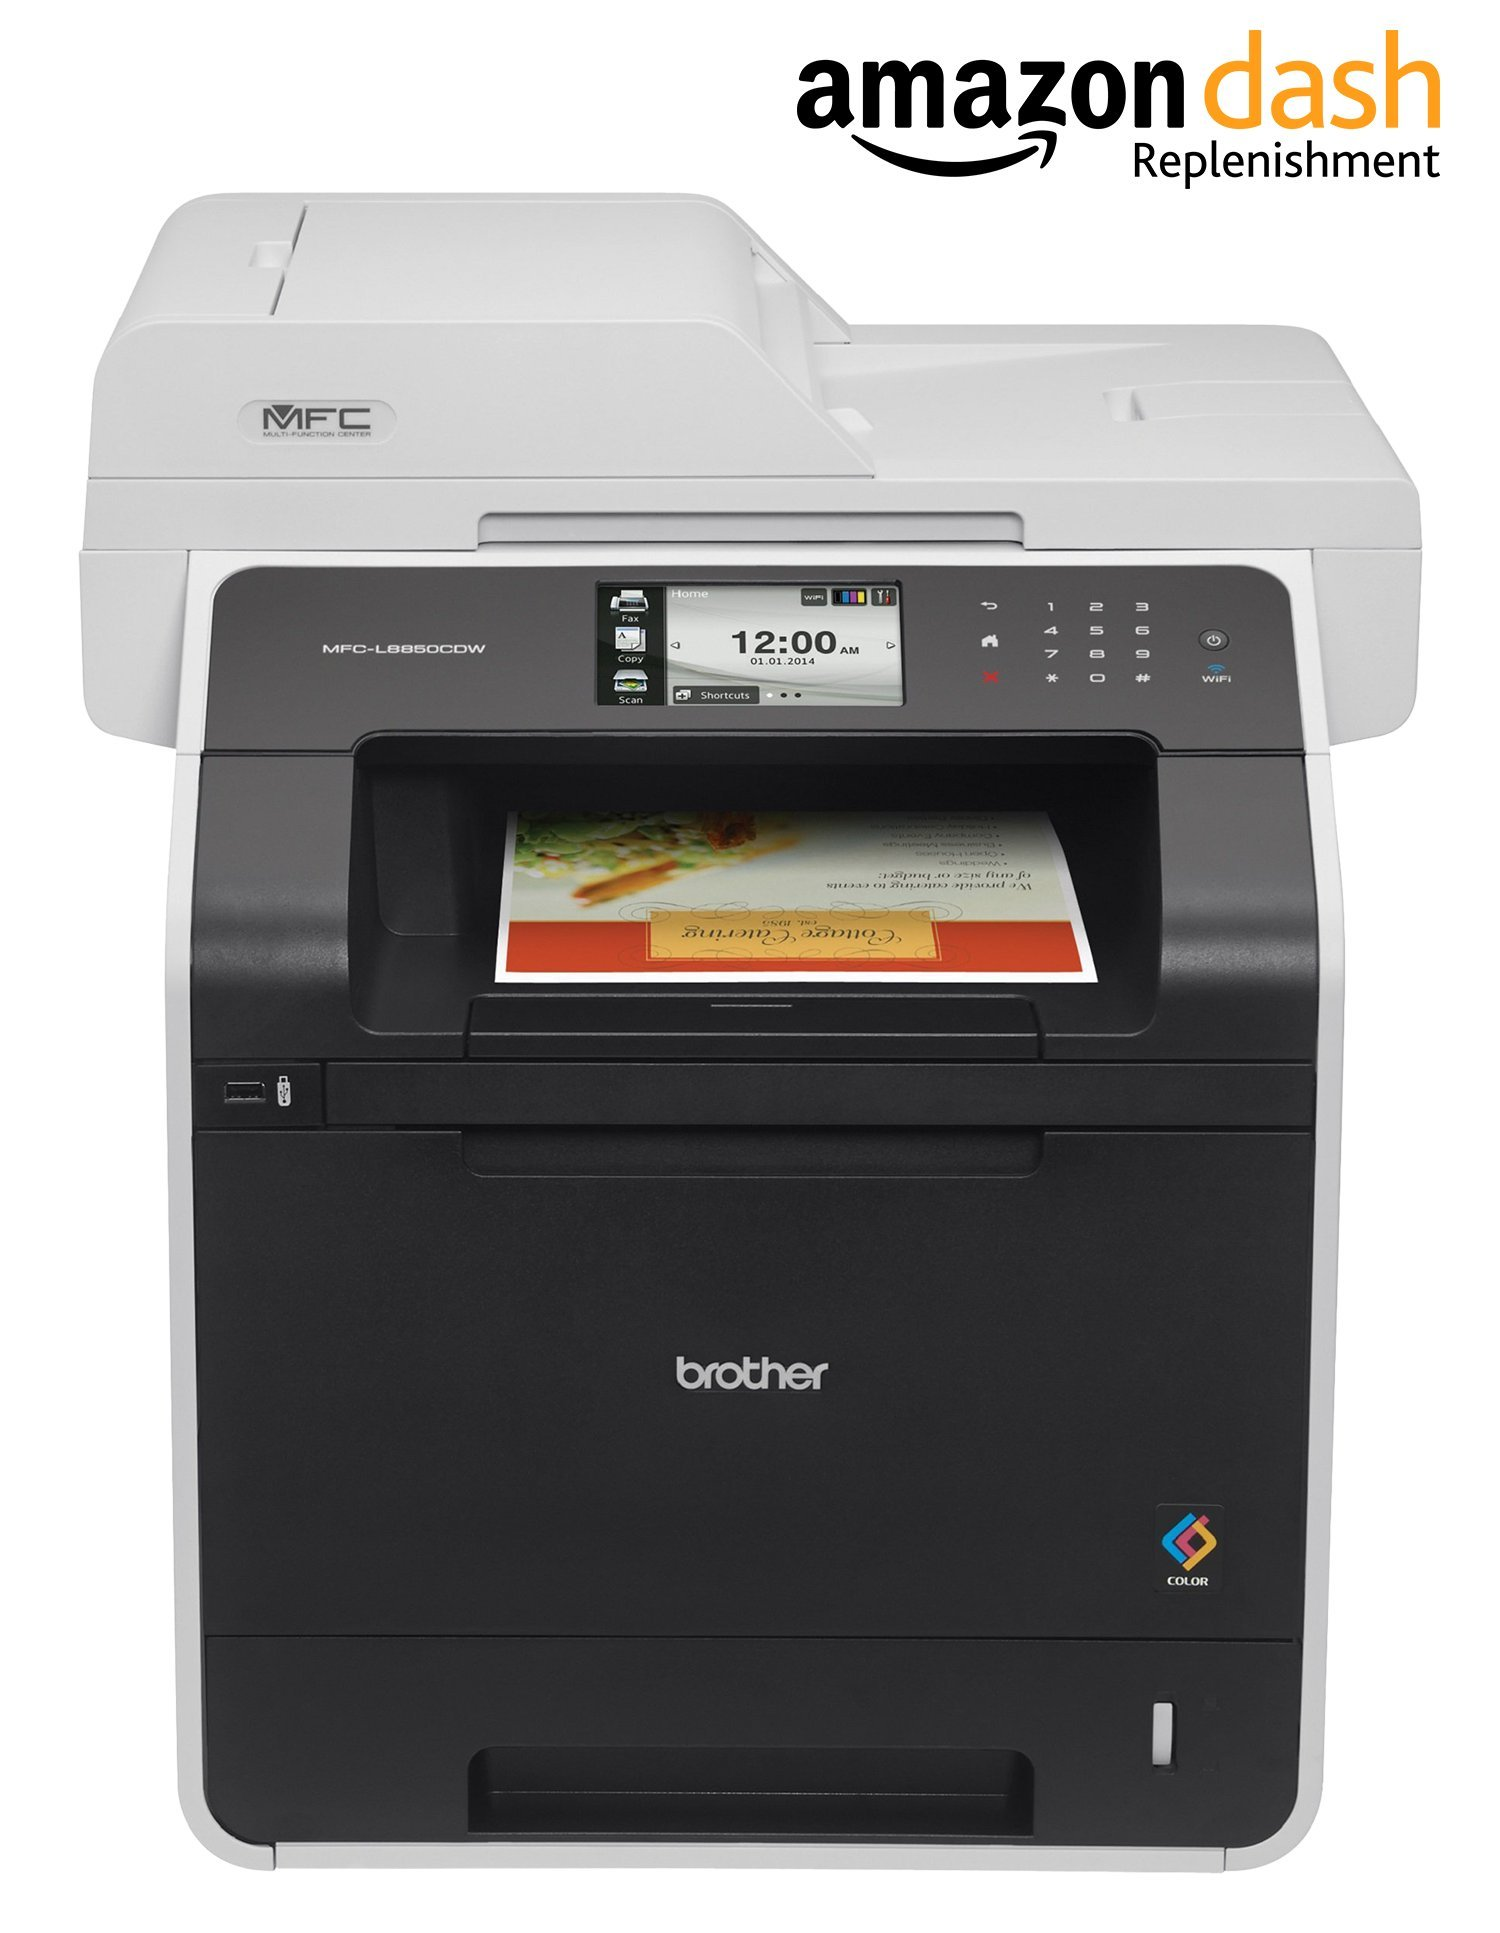 Brother Printer MFC-L8850CDW Wireless Color Laser Printer with Scanner, Copier and Fax, Amazon Dash Replenishment Enabled